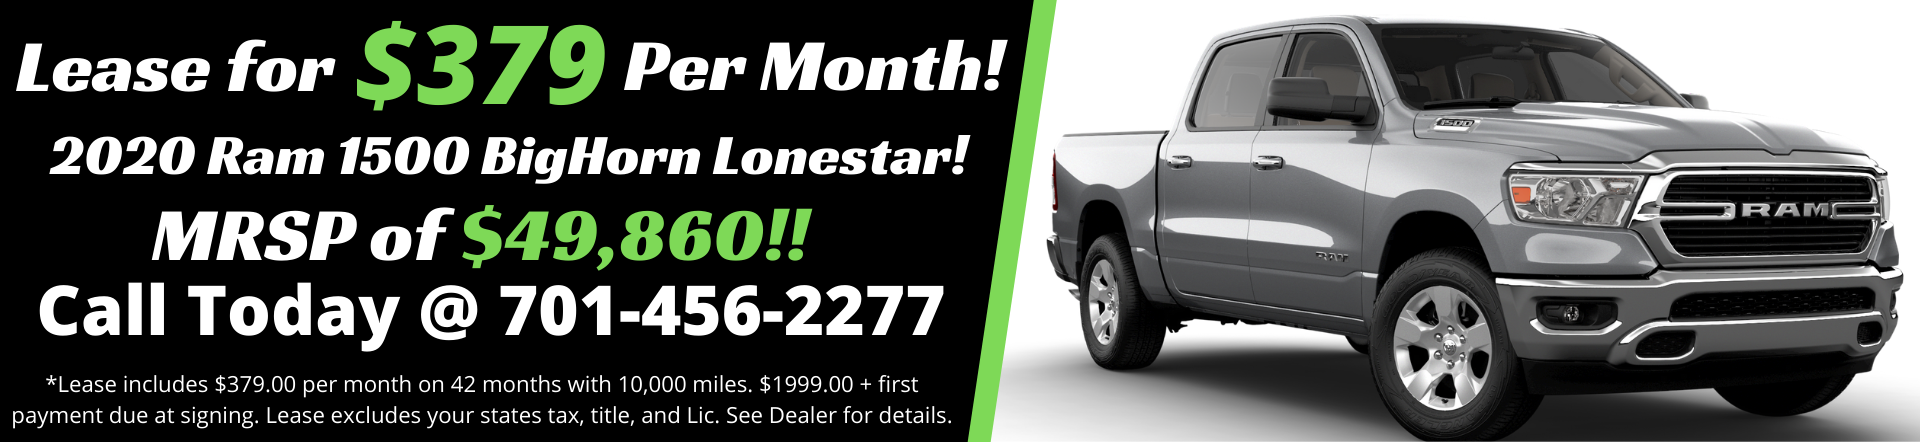 Lease a 2020 RAM 1500 BigHorn Lonestar for only $379 per month!